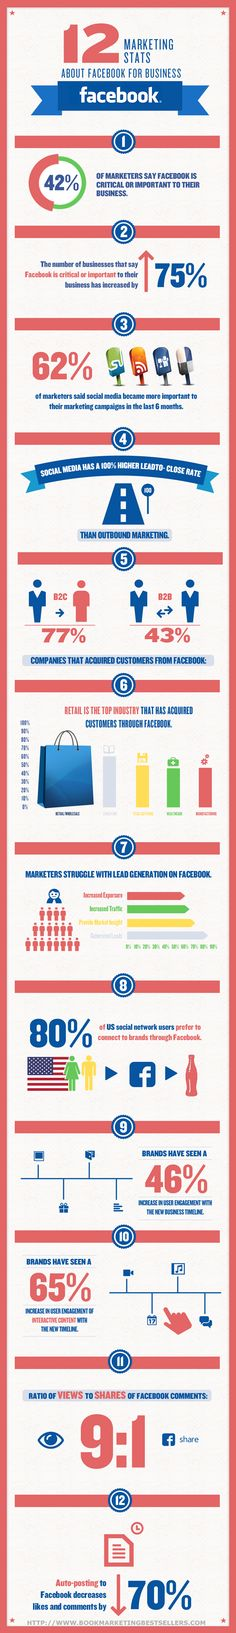 12 Marketing Stats about Facebook for Business |